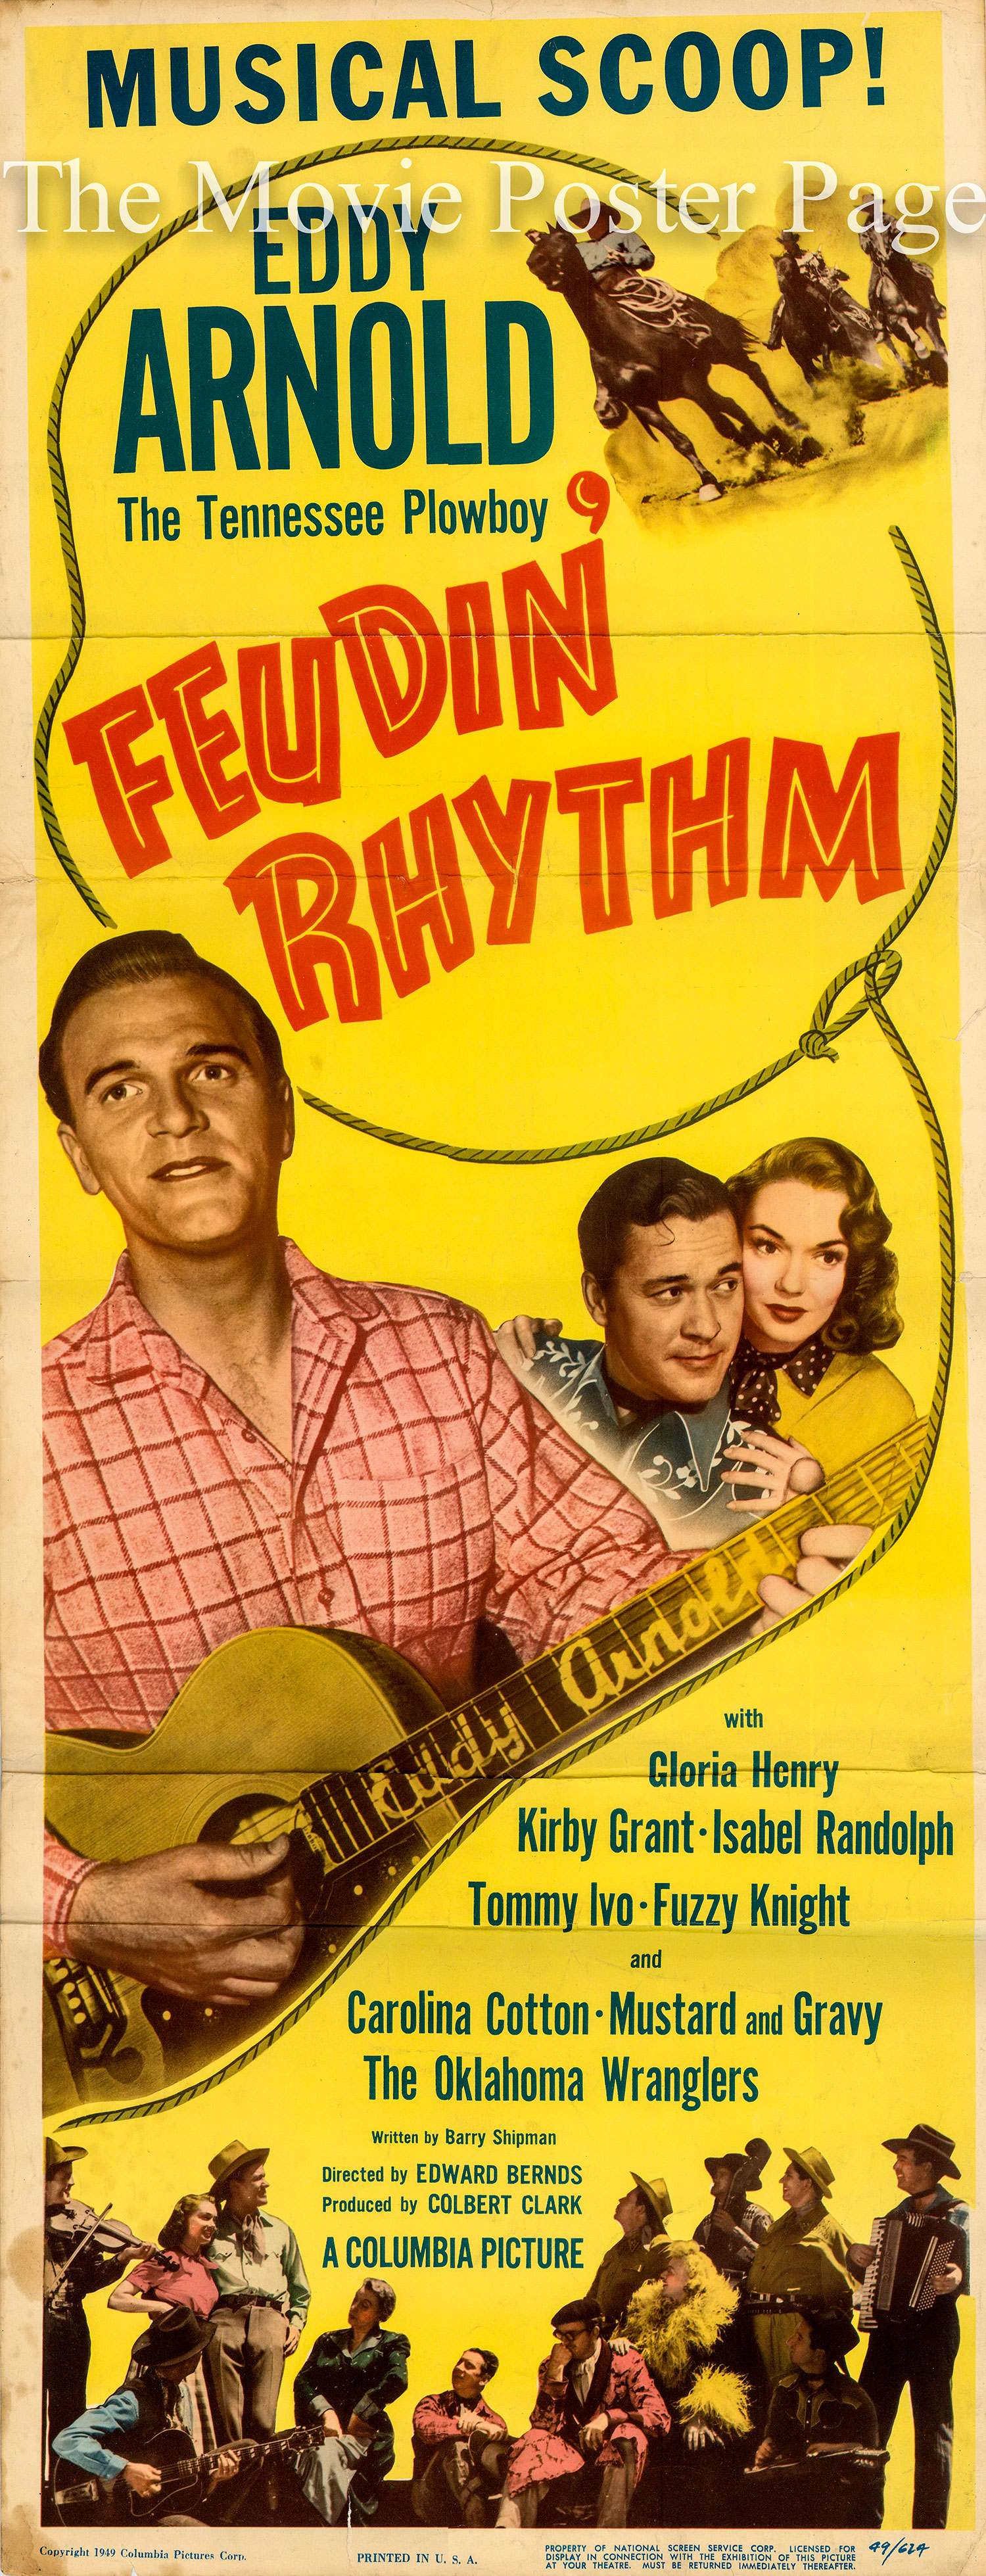 Pictured is a US insert promotional poster for the 1949 Edward Bernds film Feudin' Rhythm starring Eddy Arnold.